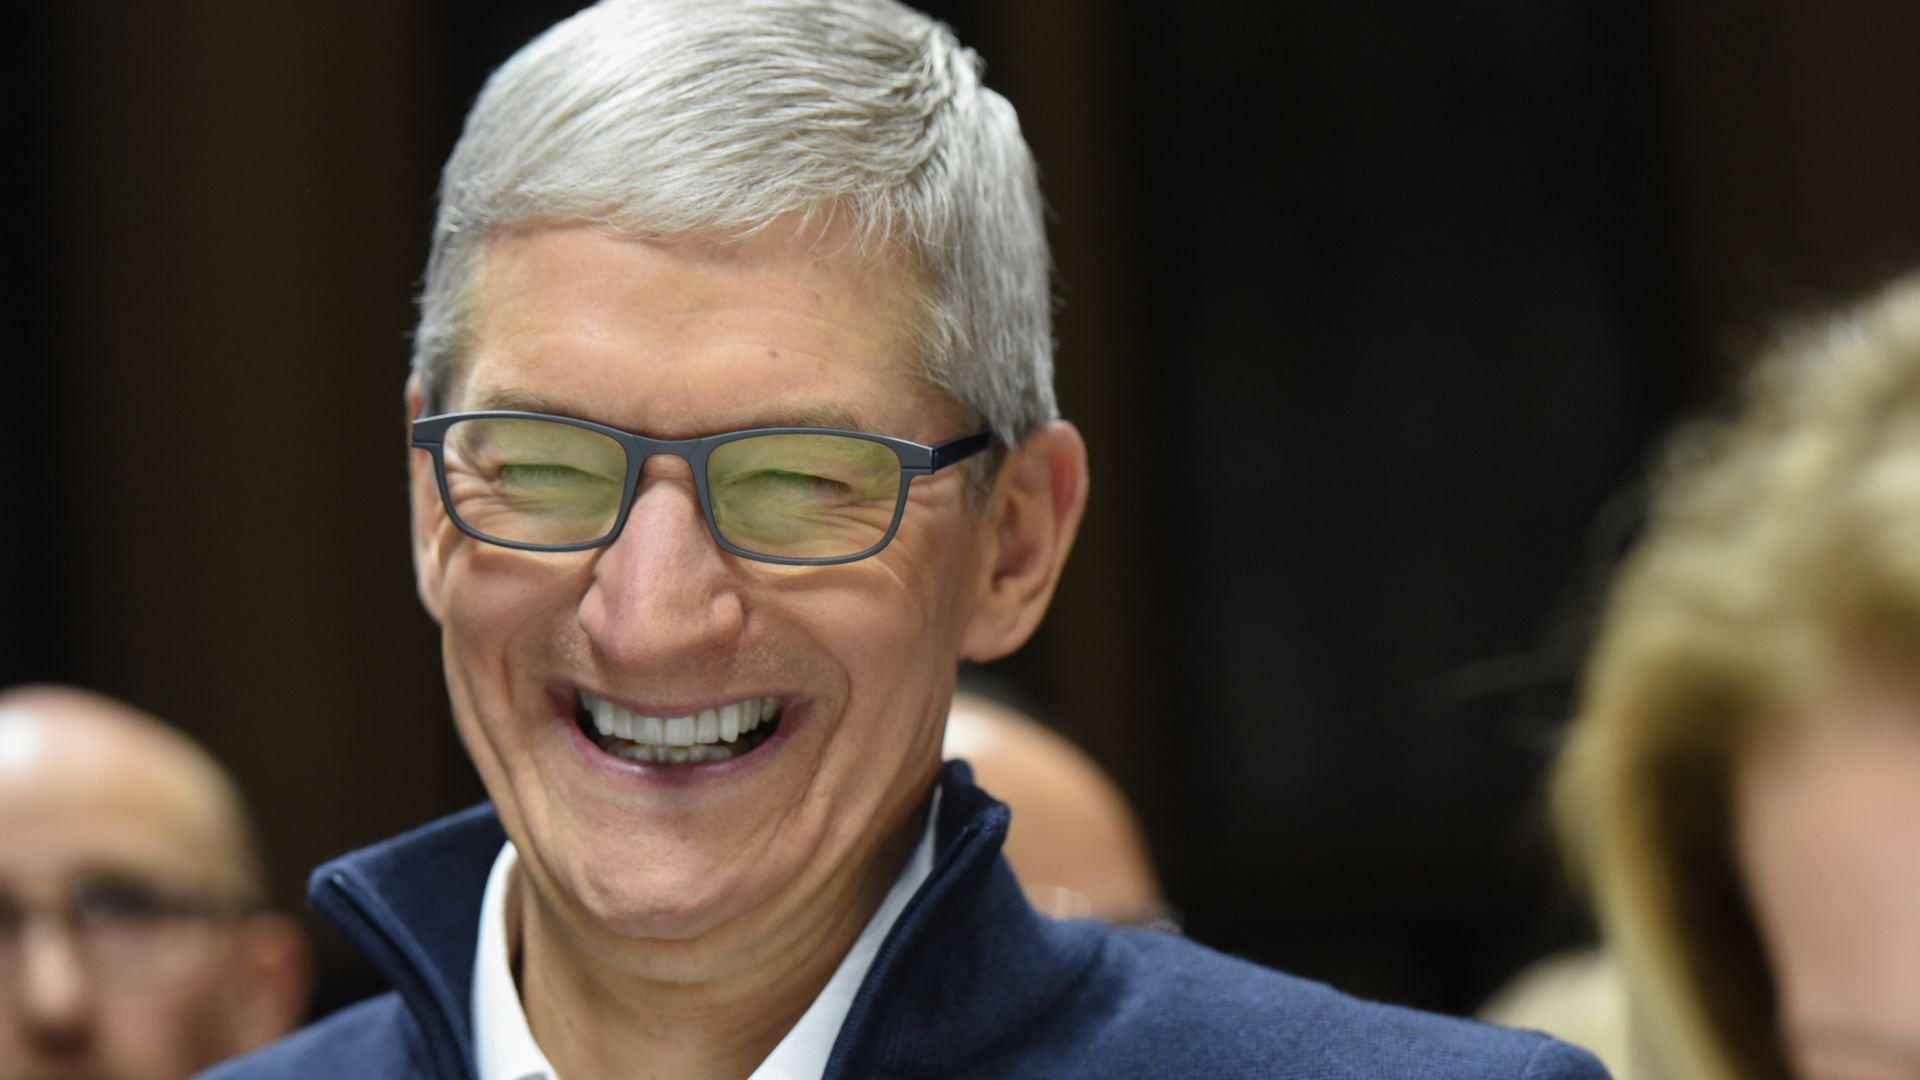 Apple CEO Tim Cook smiling